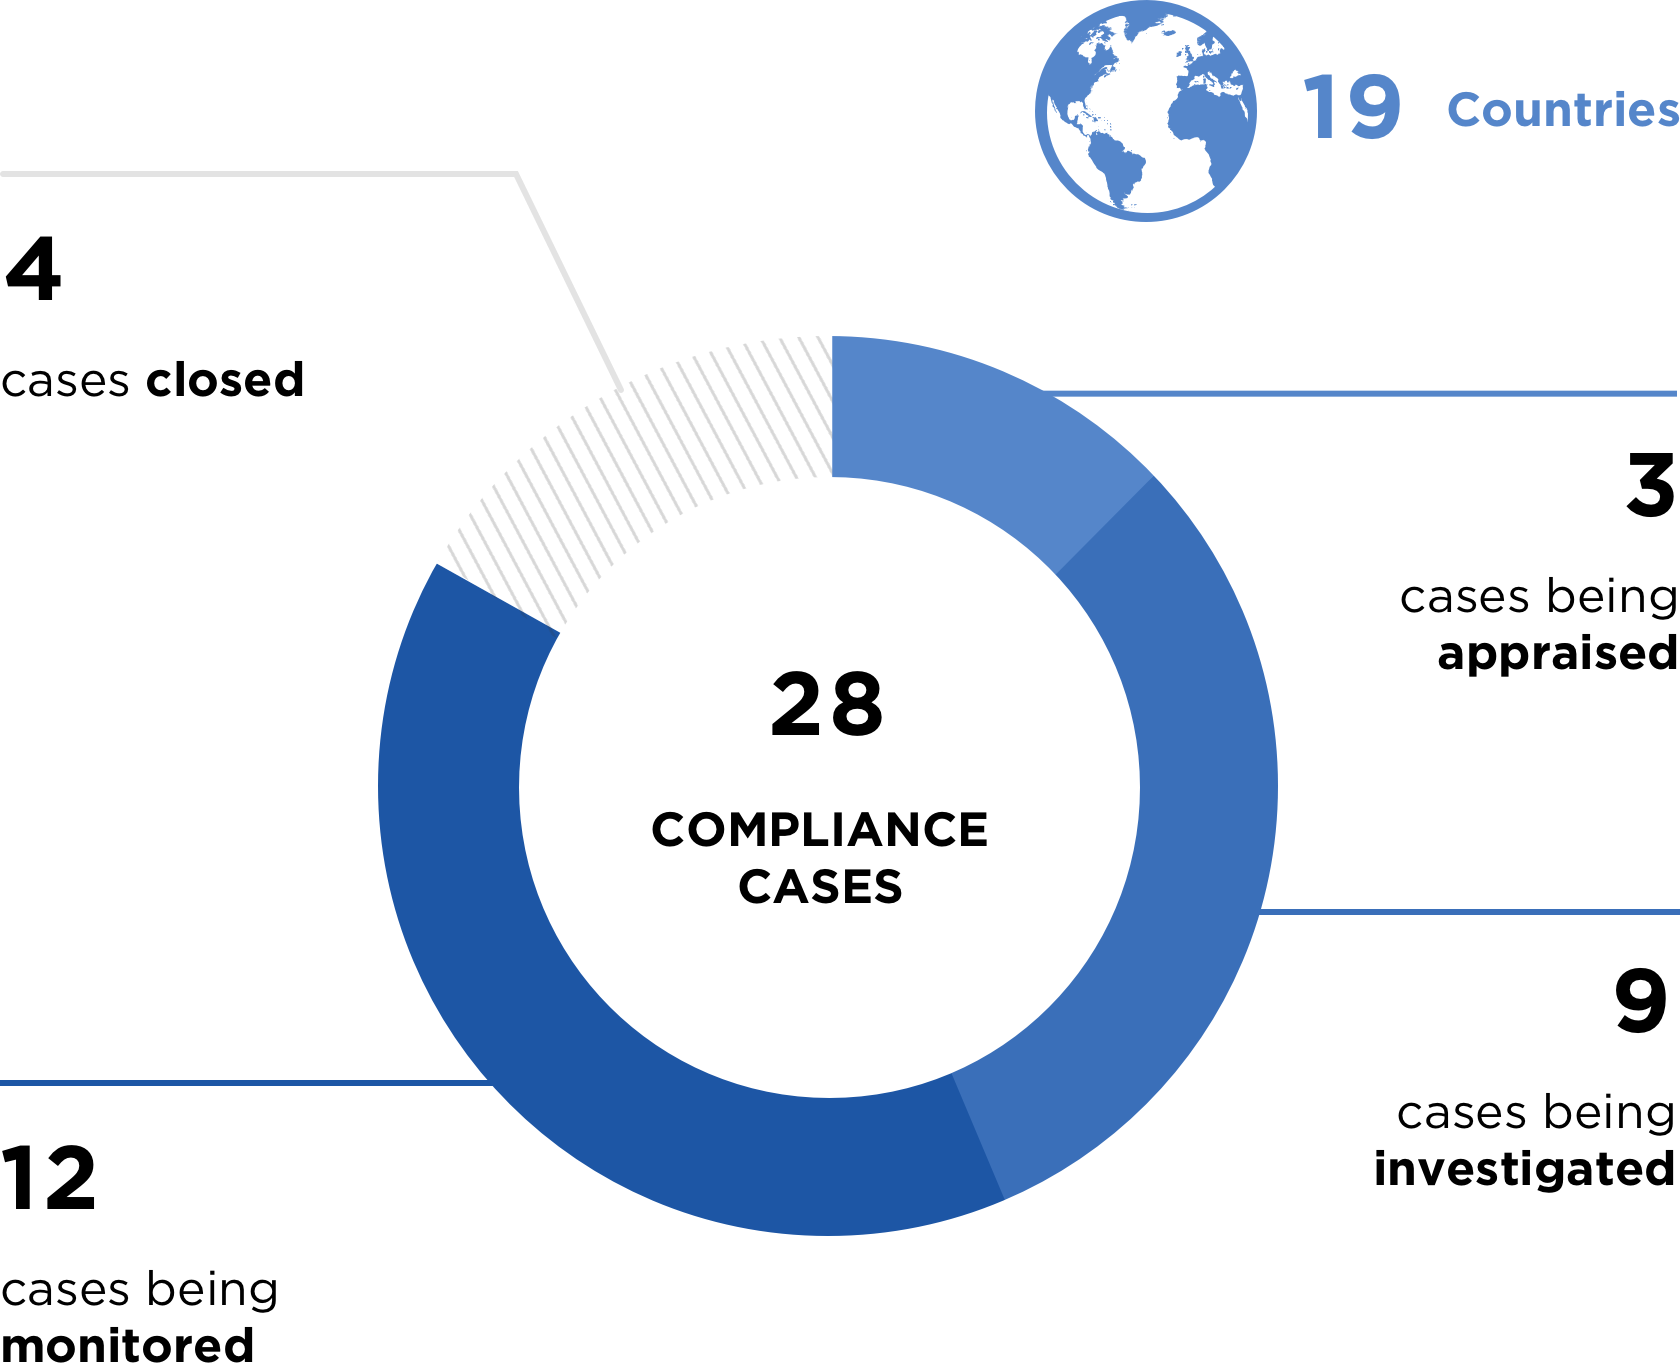 28 Compliance Cases; 19 Countries; 12 Investigations in Monitoring; 9 Ongoing Investigations; 4 Cases Closed; 3 Ongoing Appraisals